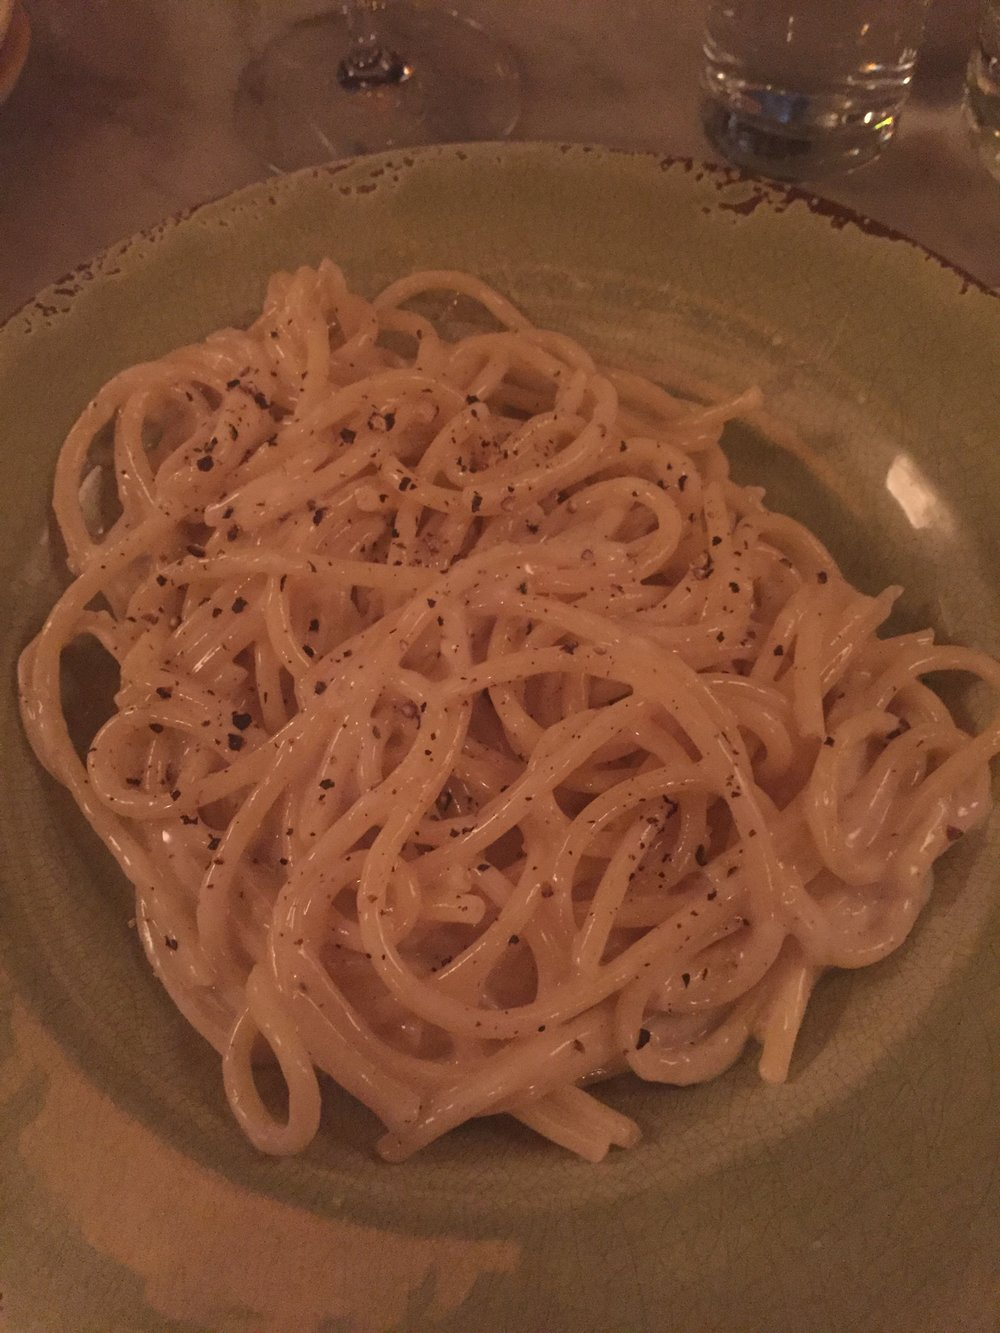 Pasta porn in the form of cacio e pepe